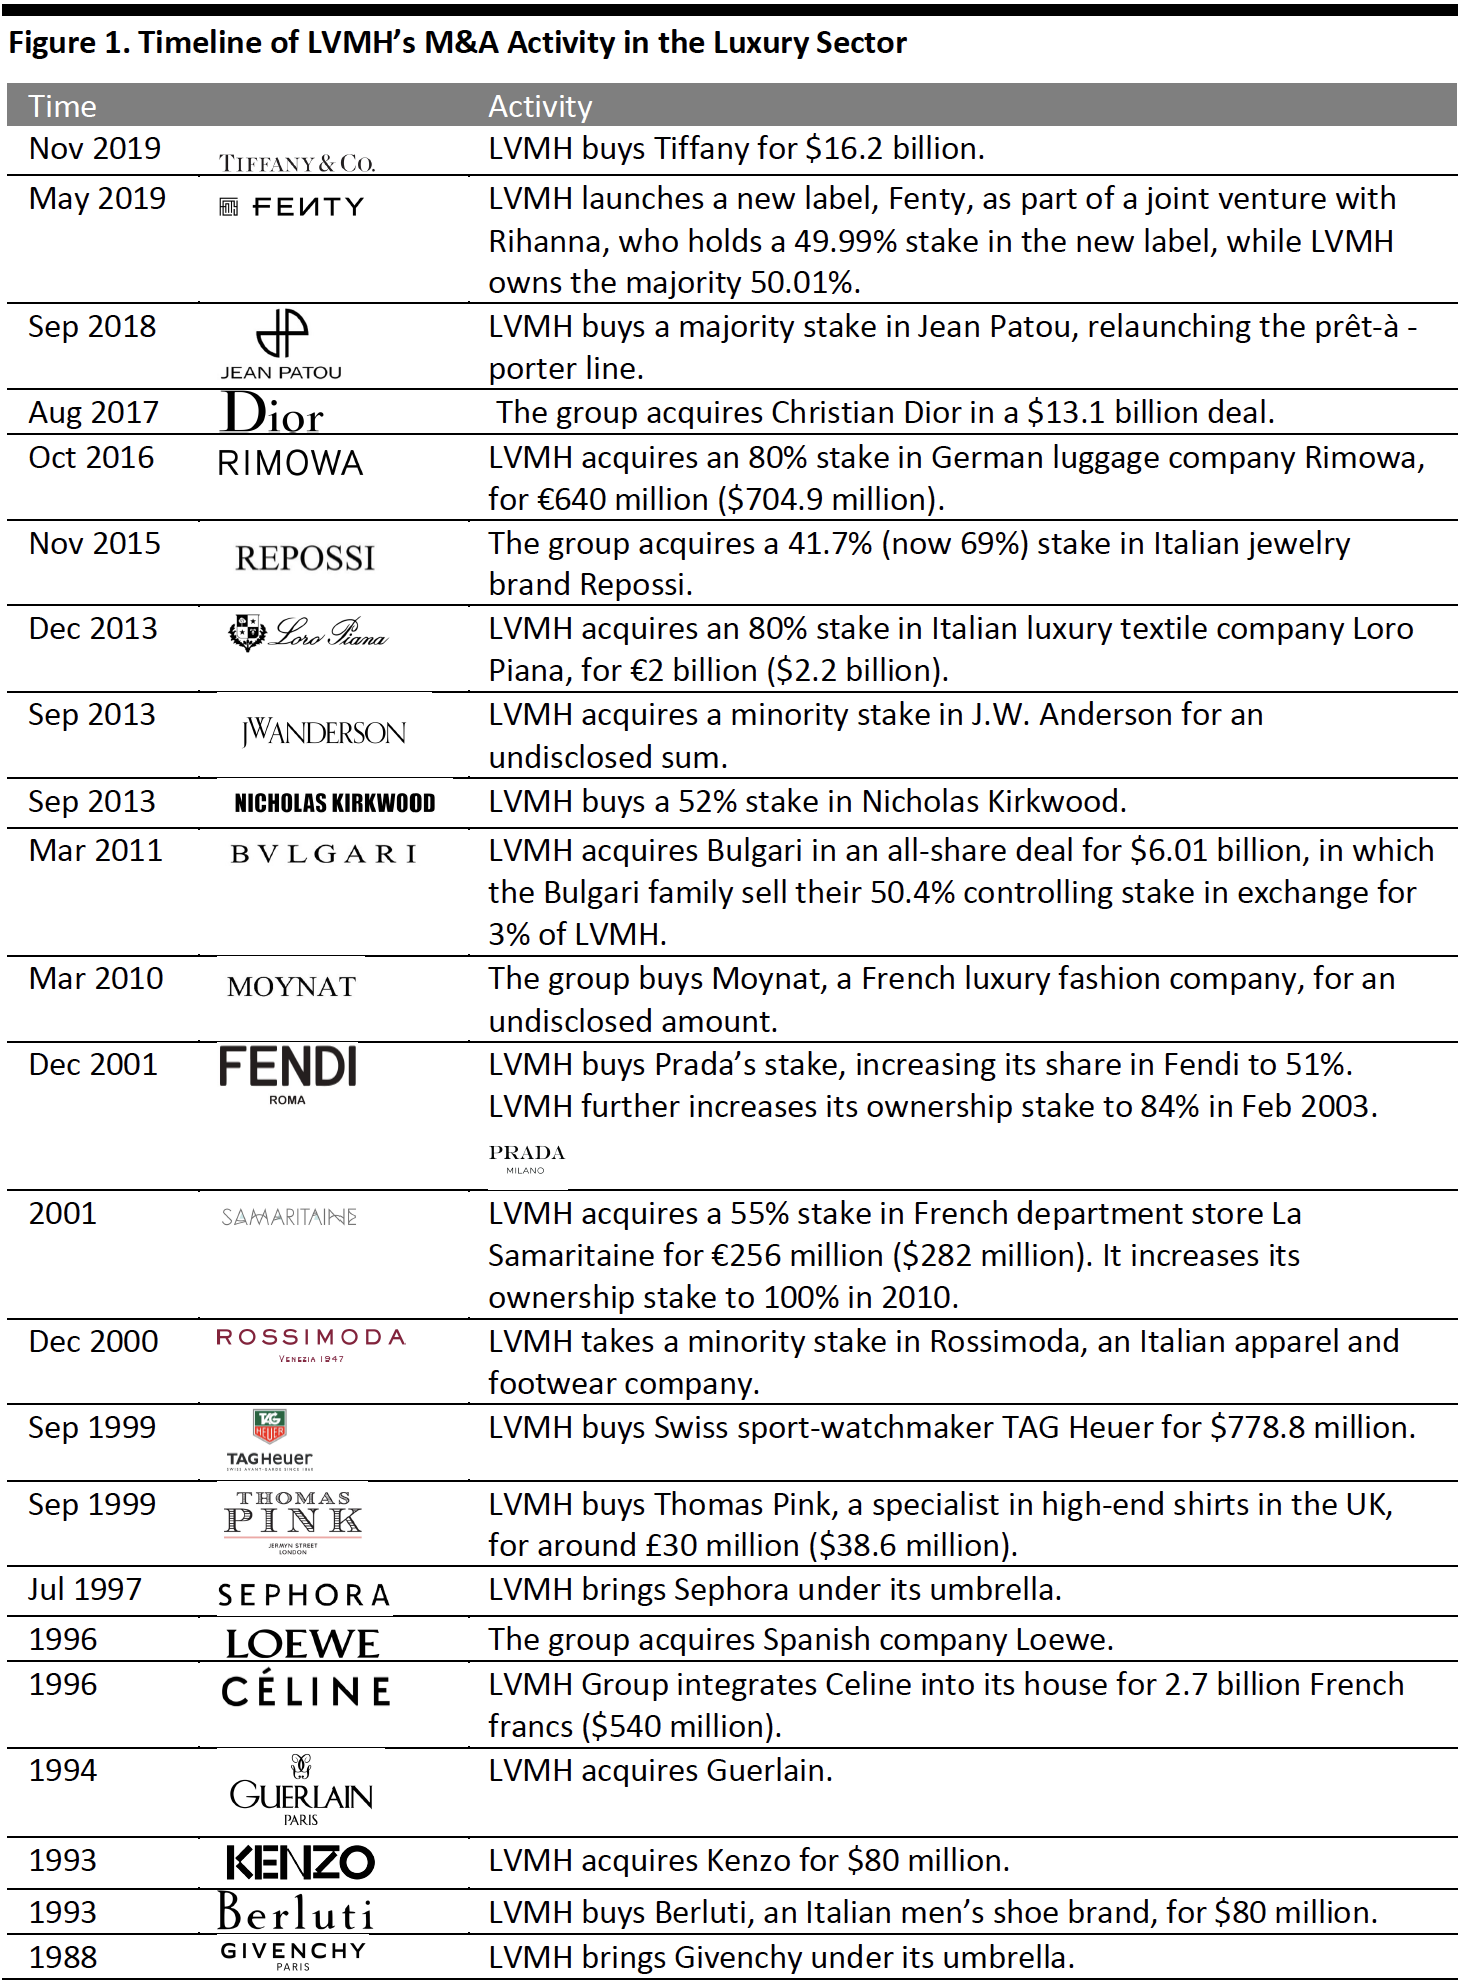 Figure 1. Timeline of LVMH's M&A Activity in the Luxury Sector